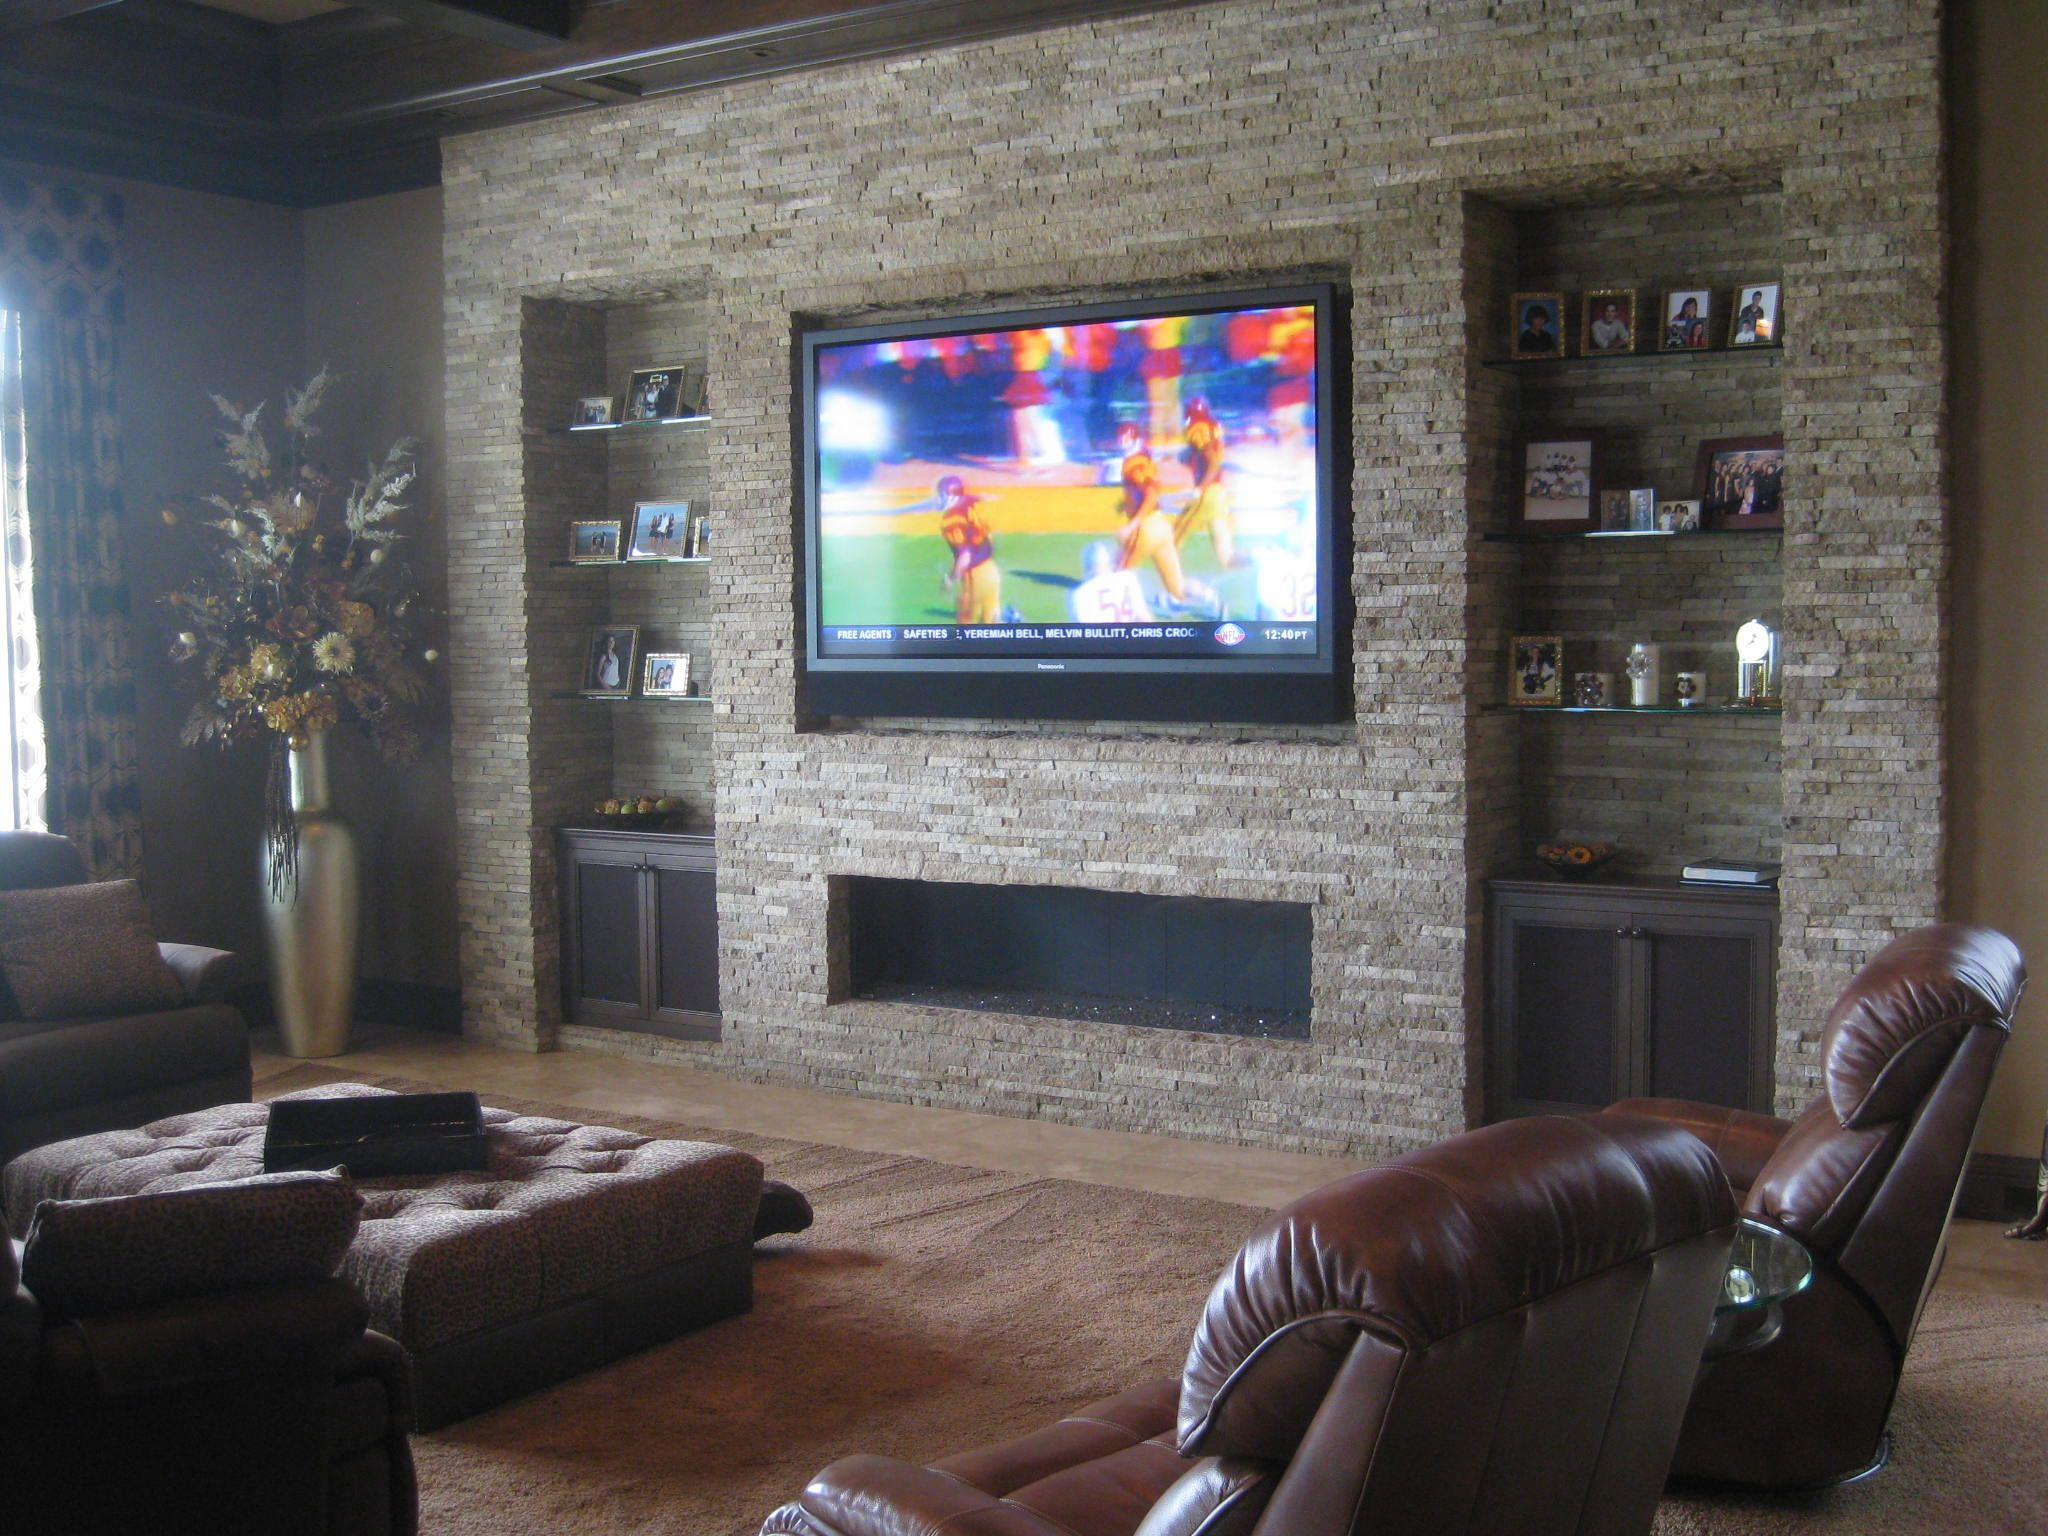 Wohnzimmer Wand Mauern Mounted Tv With Soundbar And Fireplace Google Search